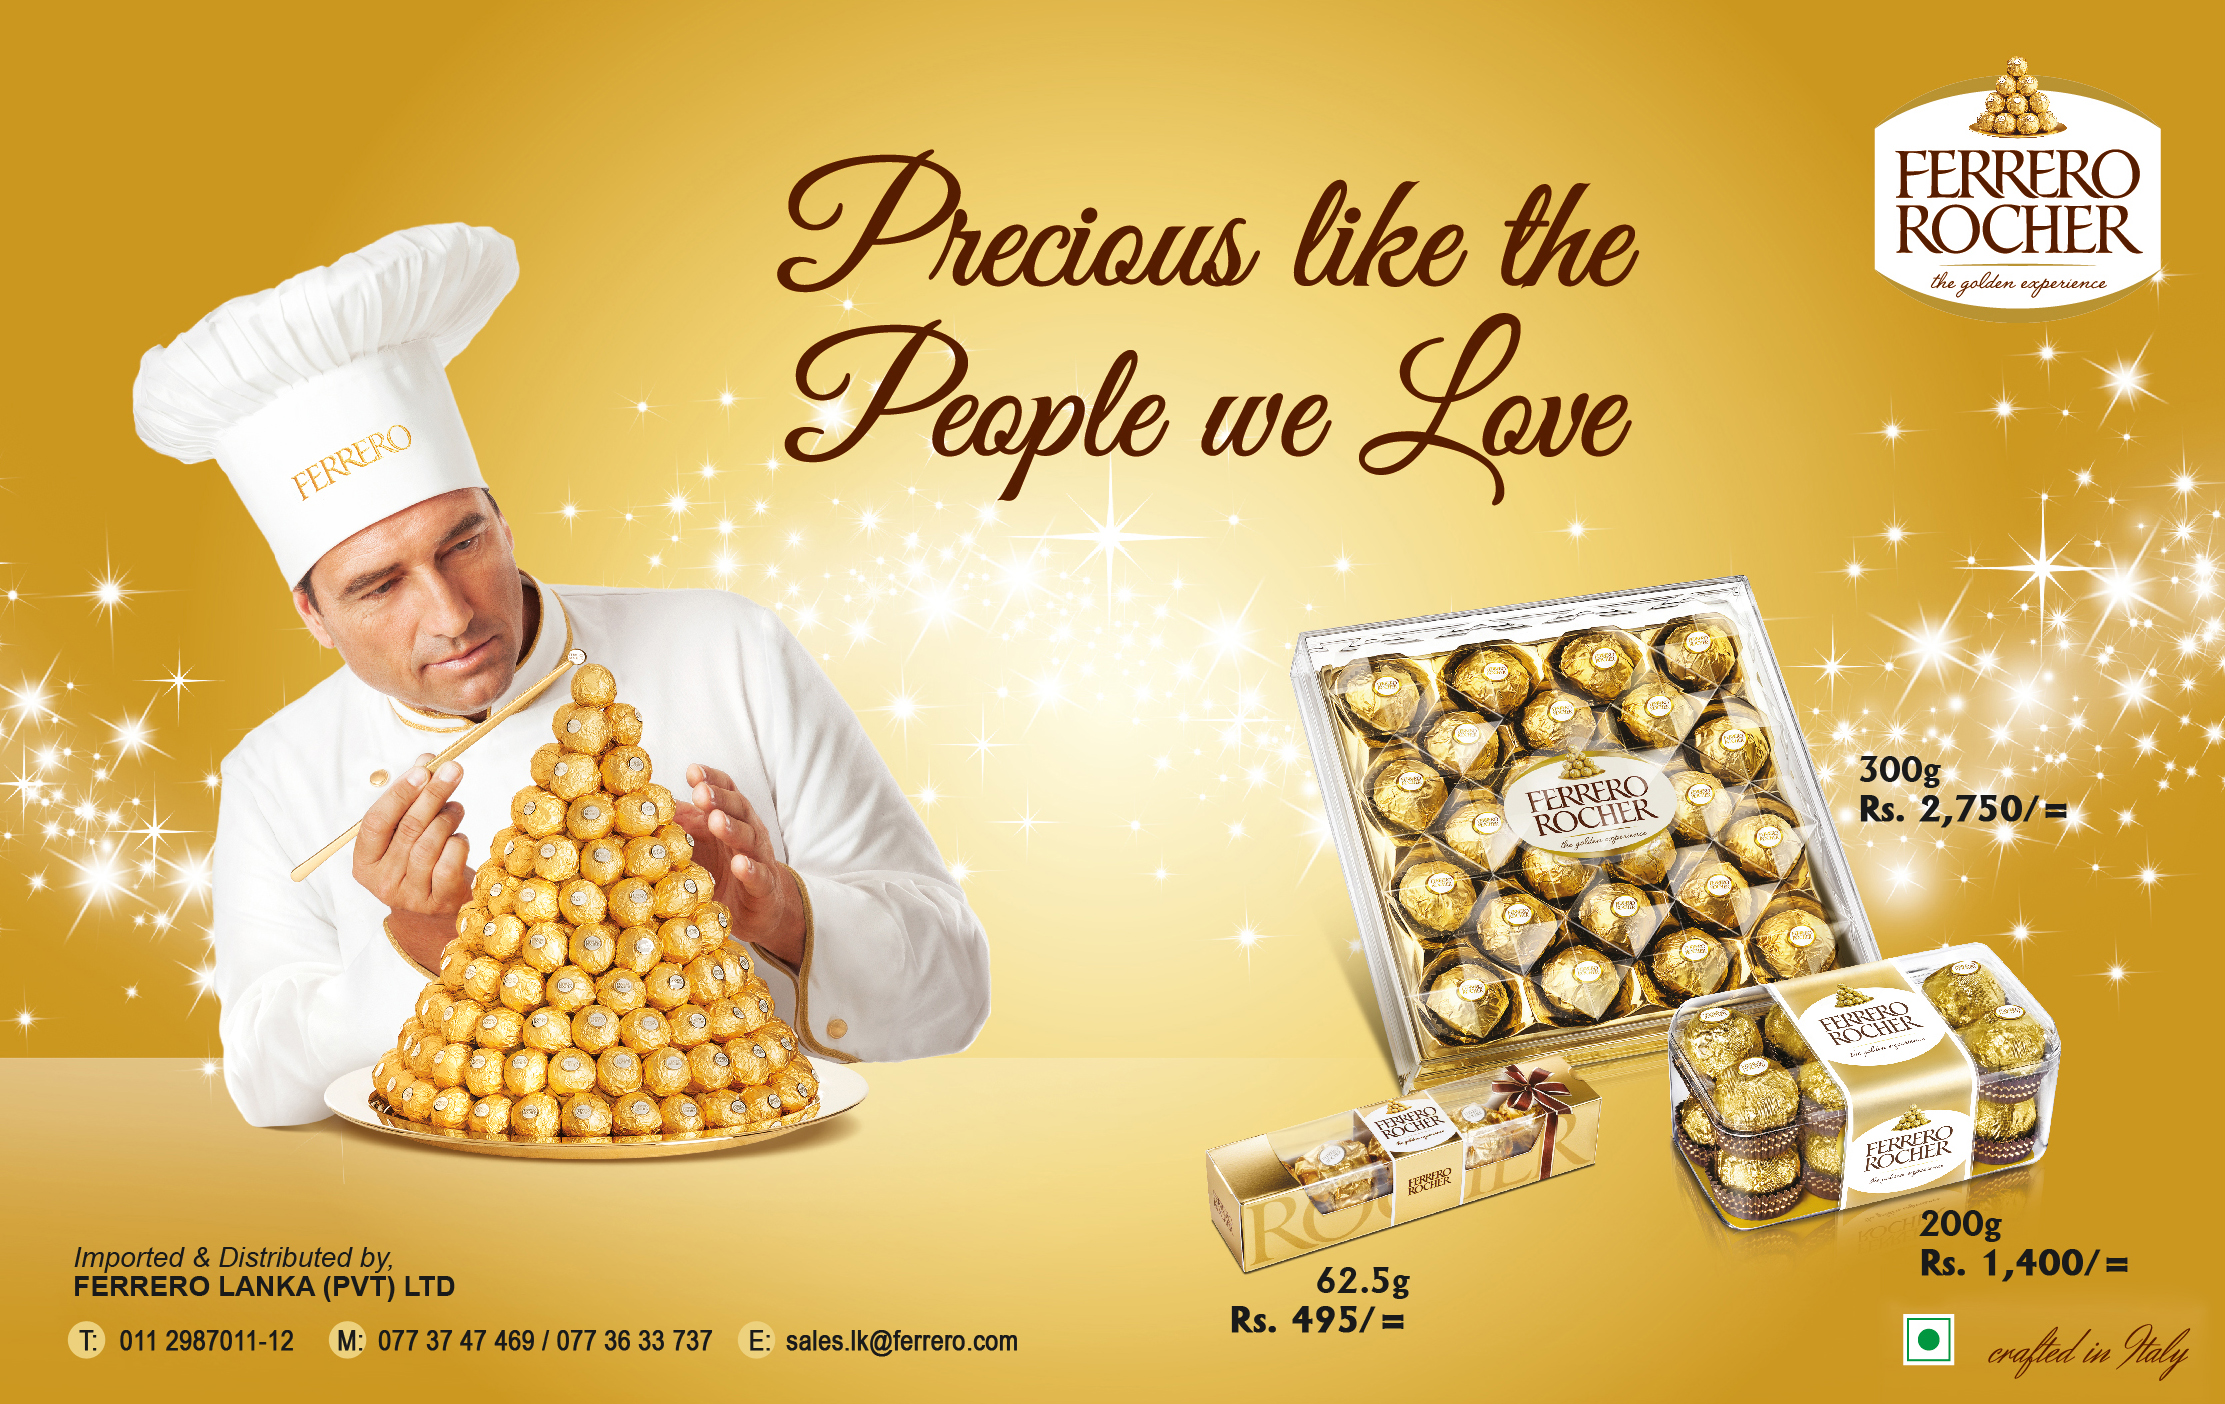 ferrero lanka(pvt) ltd